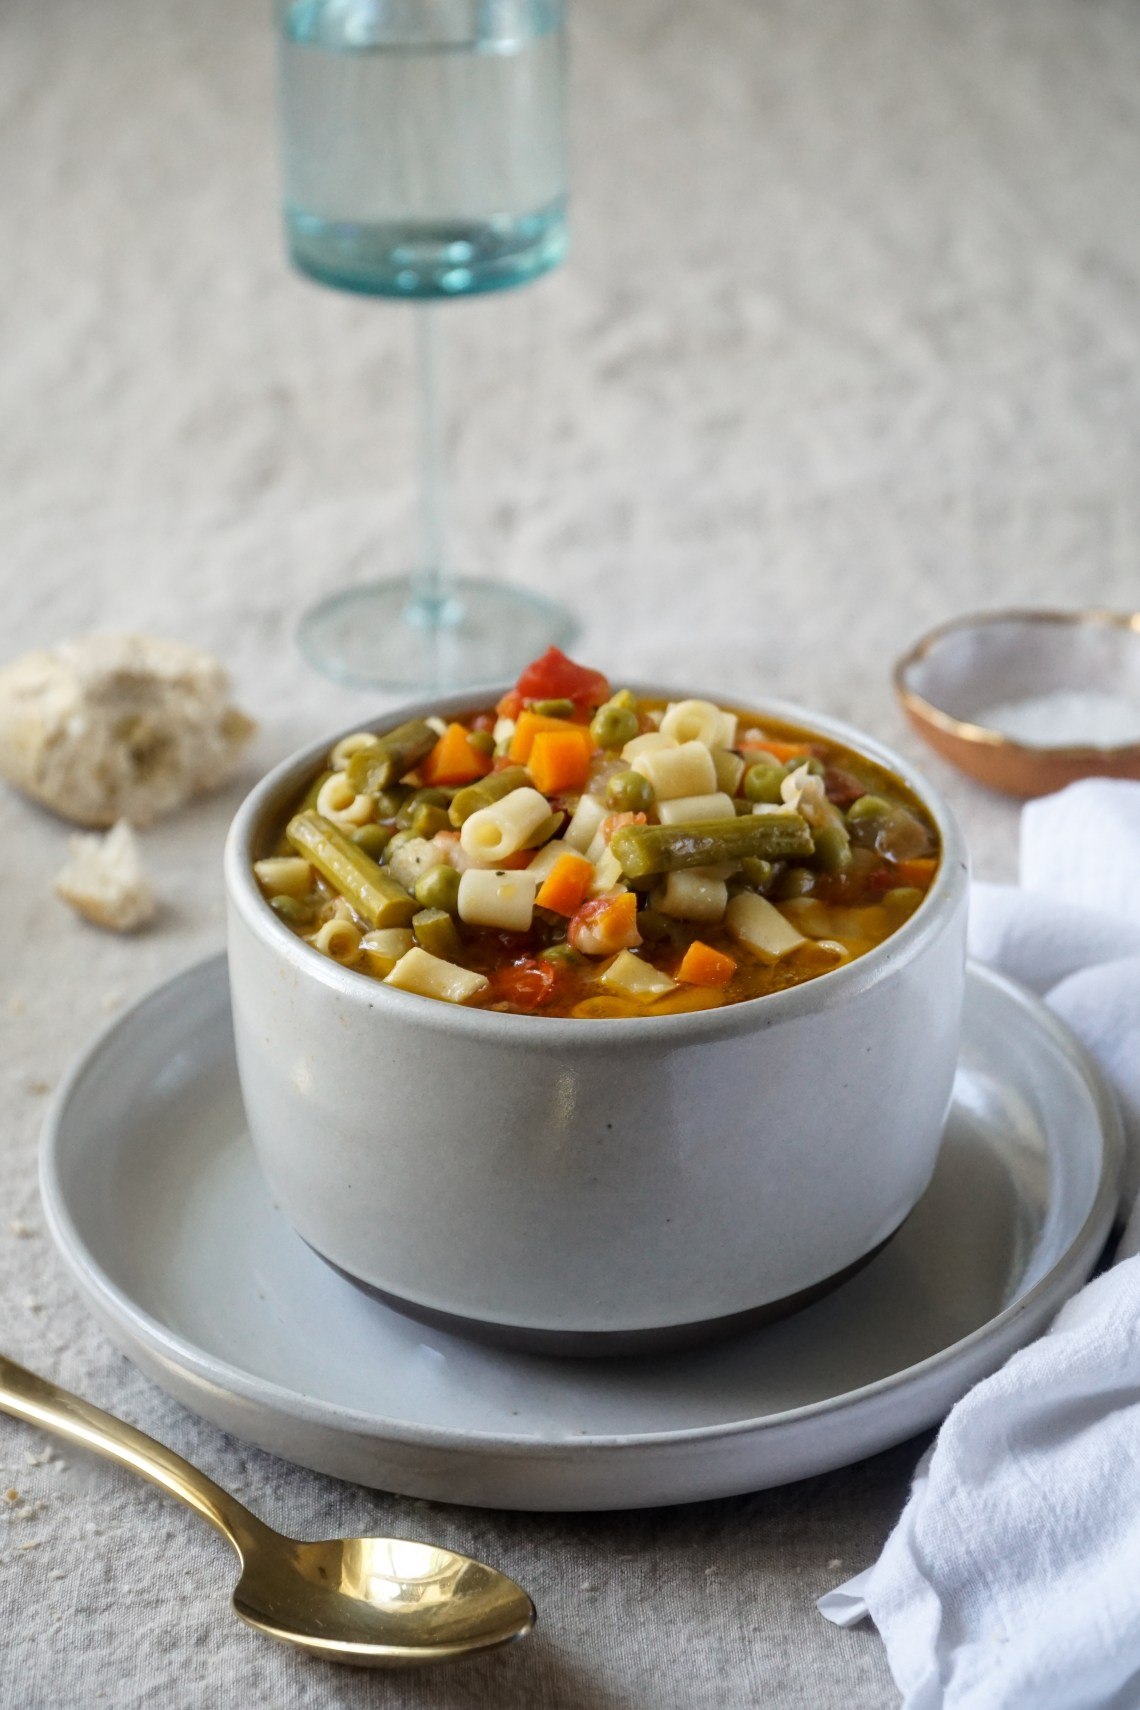 A bowl of This light spring minestrone soup on a plate with bread, water glass, and salt dish in the background.